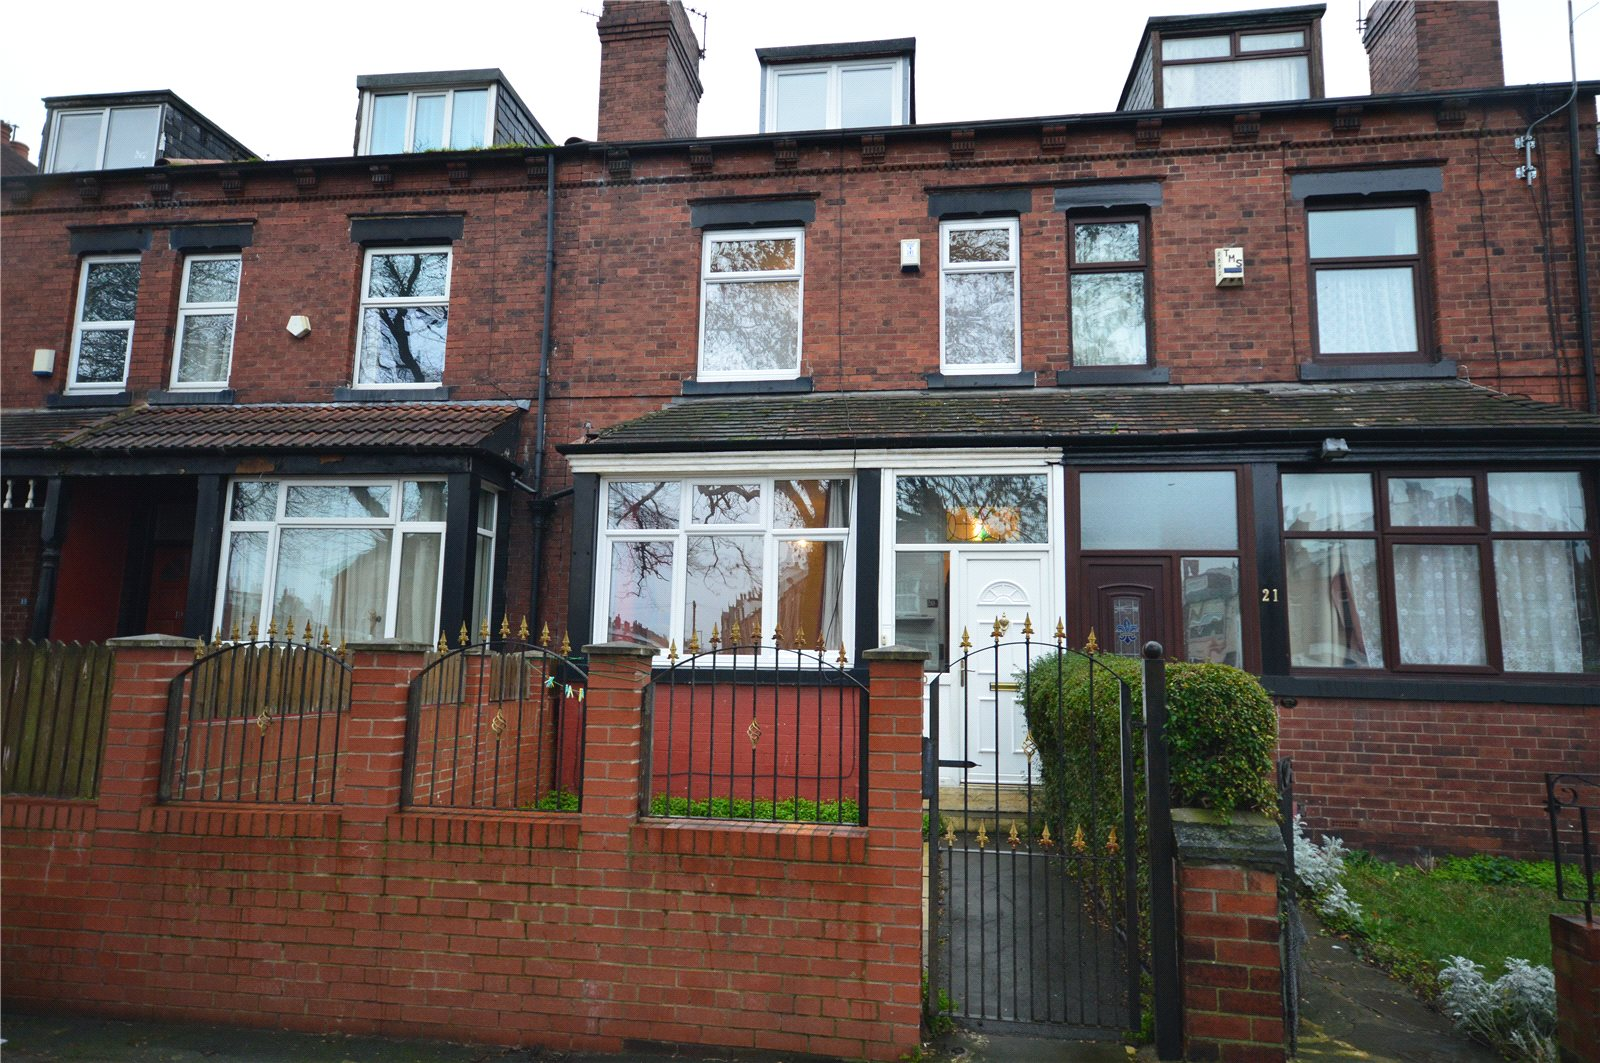 property for sale in Beeston, exterior red brick terraced home